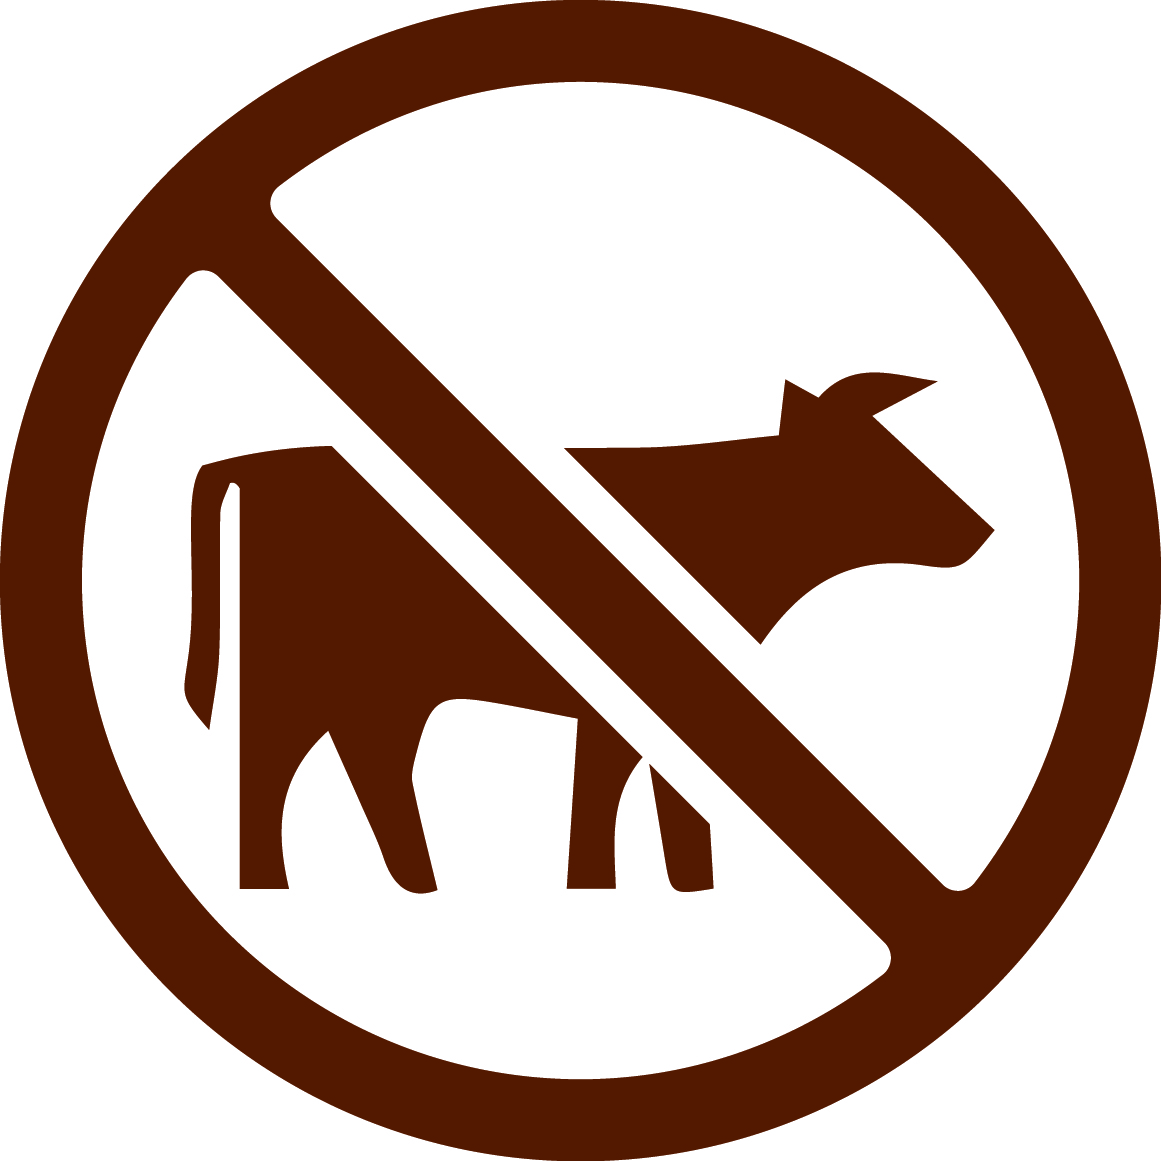 Dairy-Free icon image